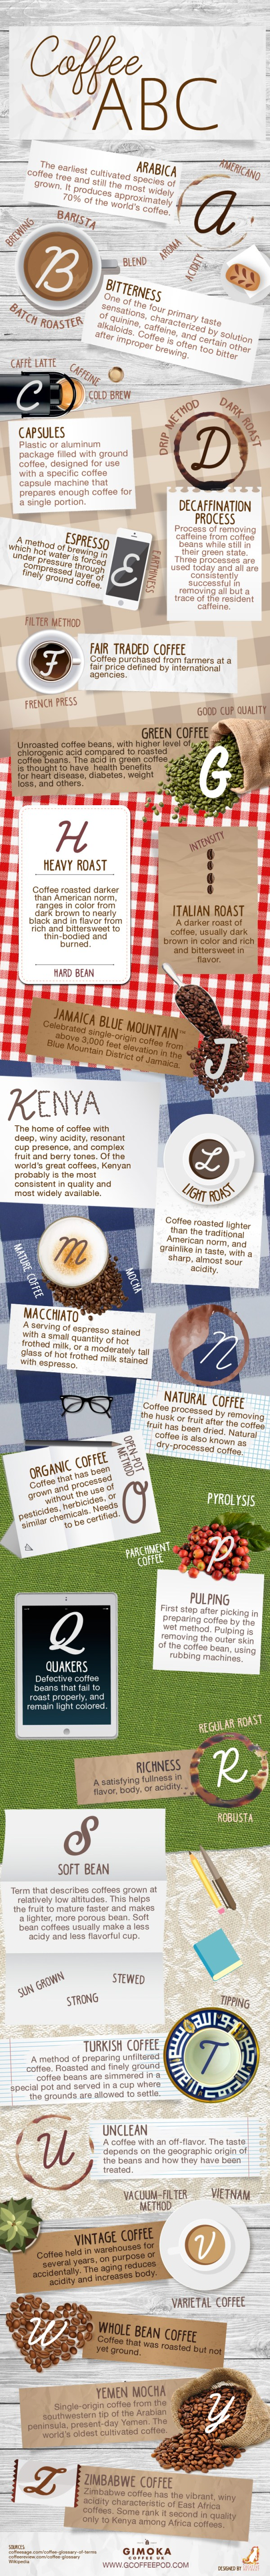 Coffee ABC's